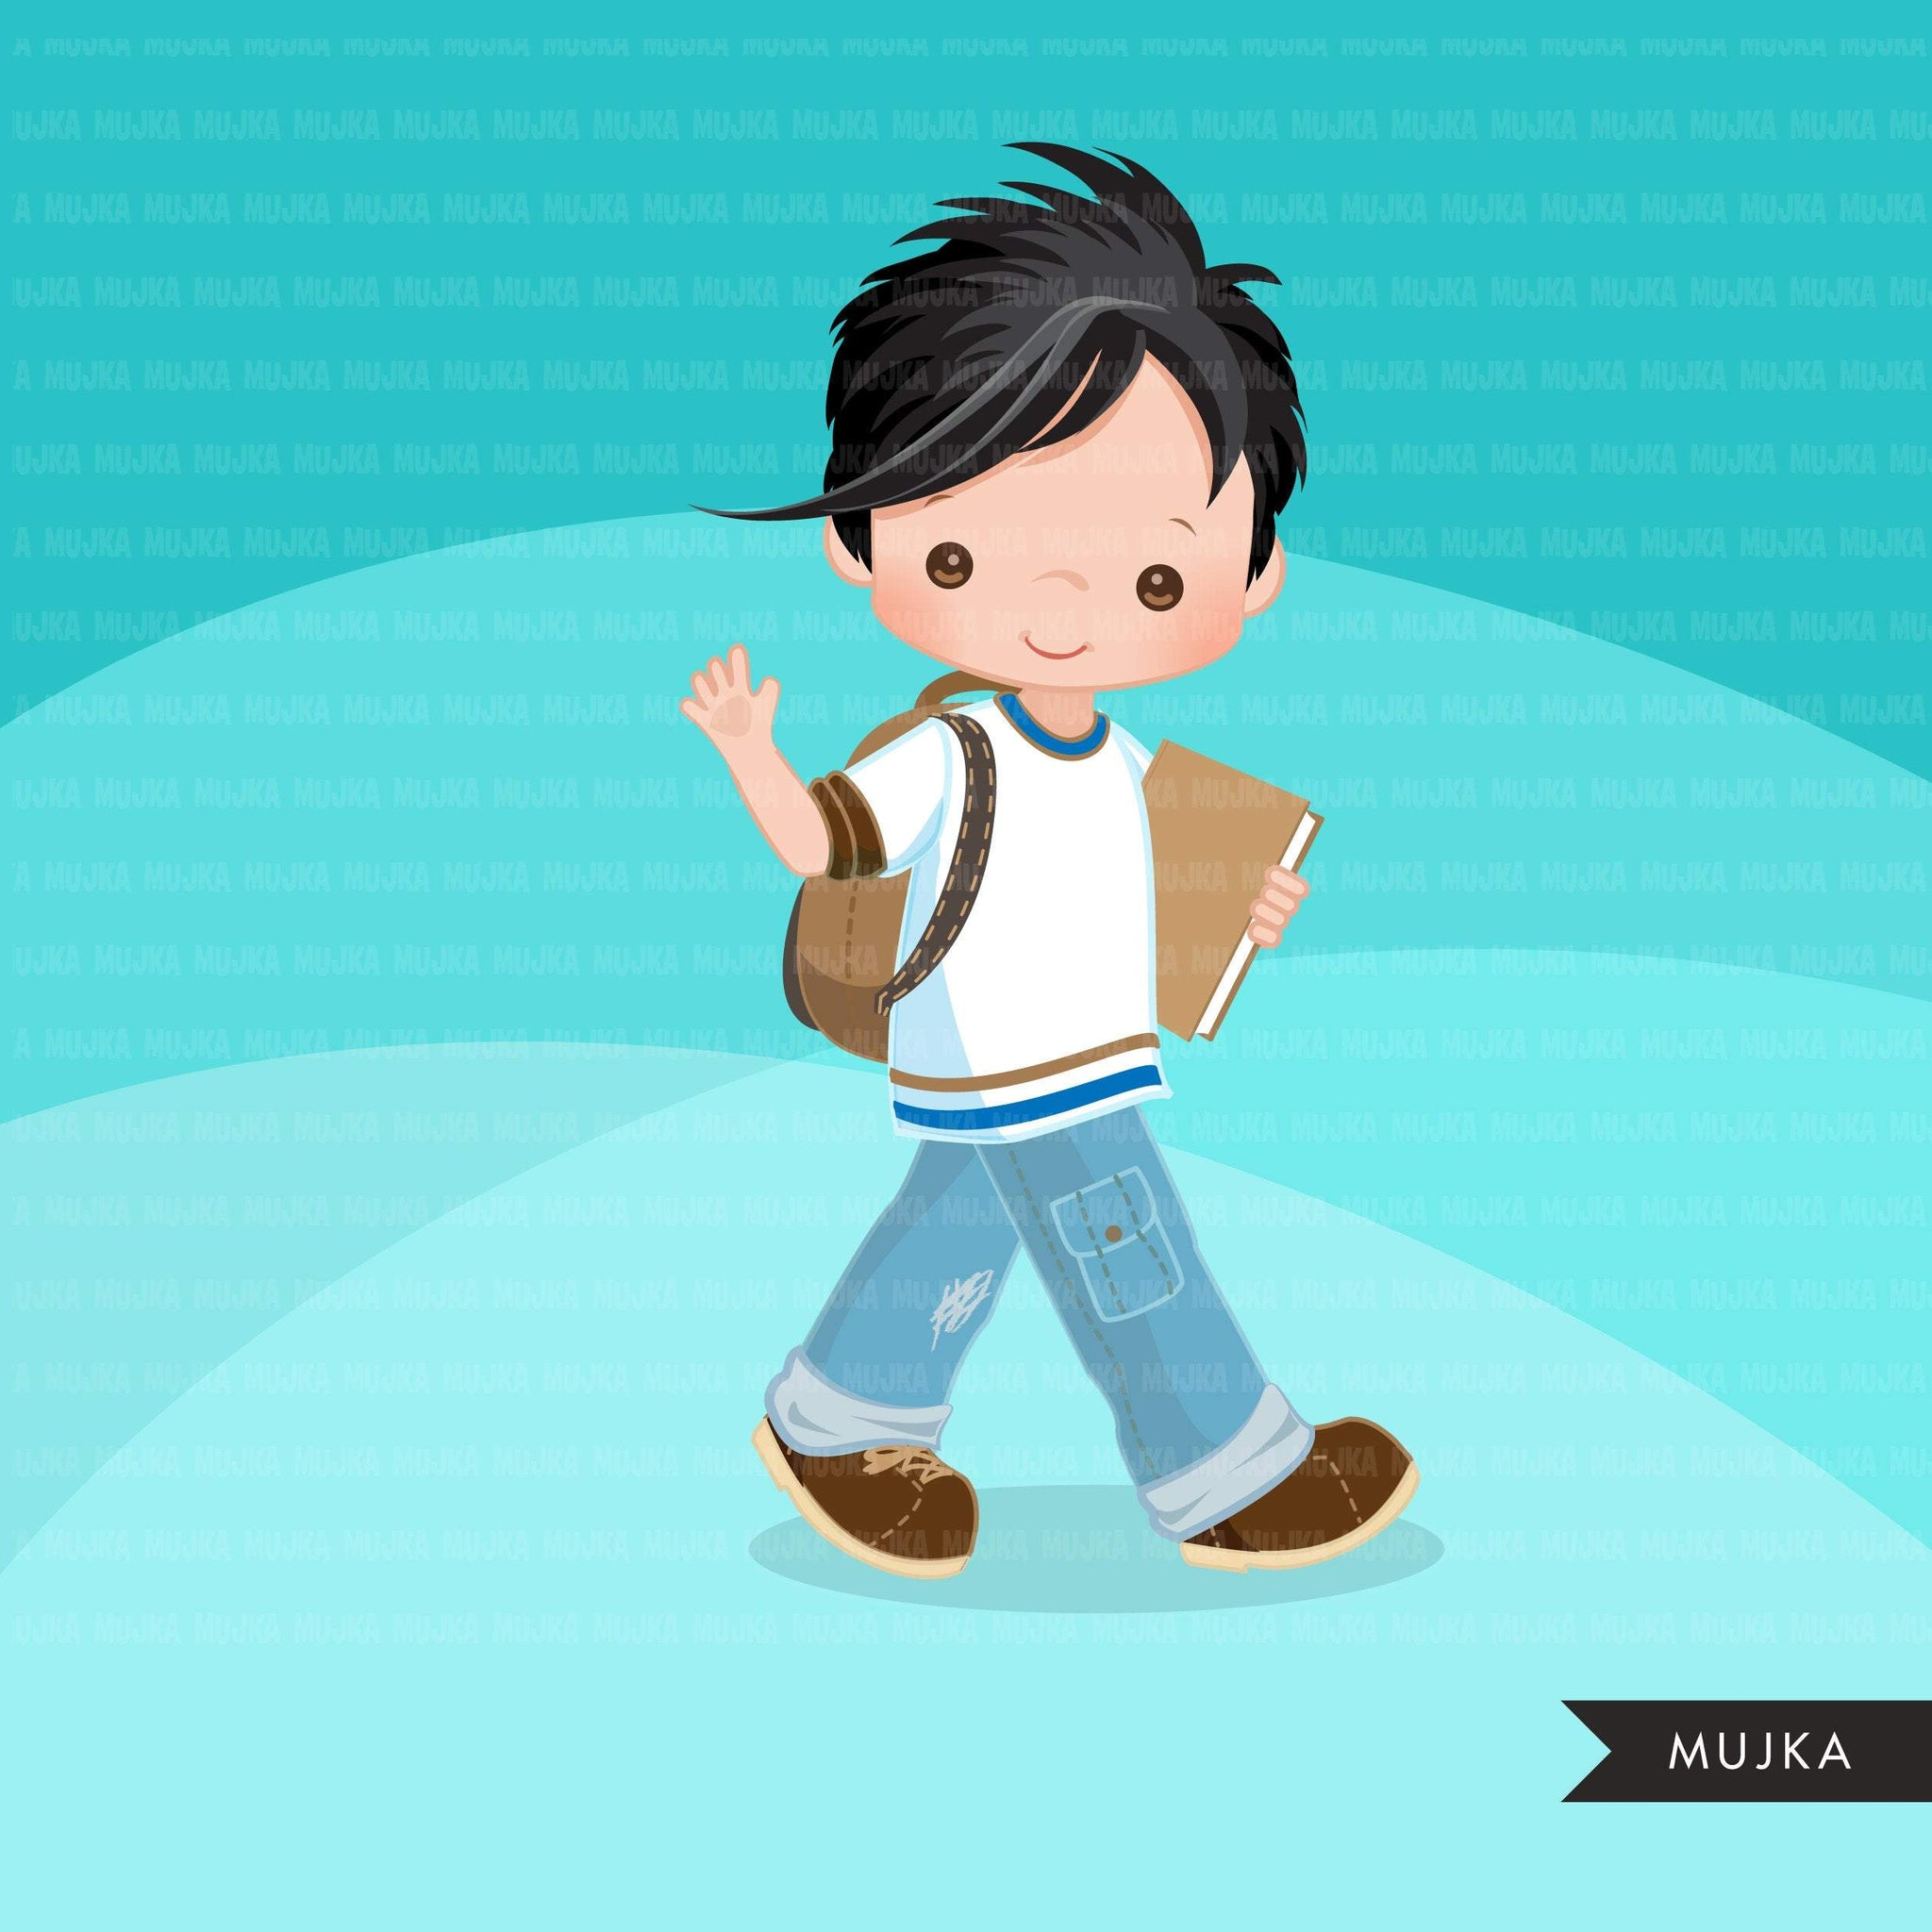 Causal Students clipart, Back to School boy character graphics